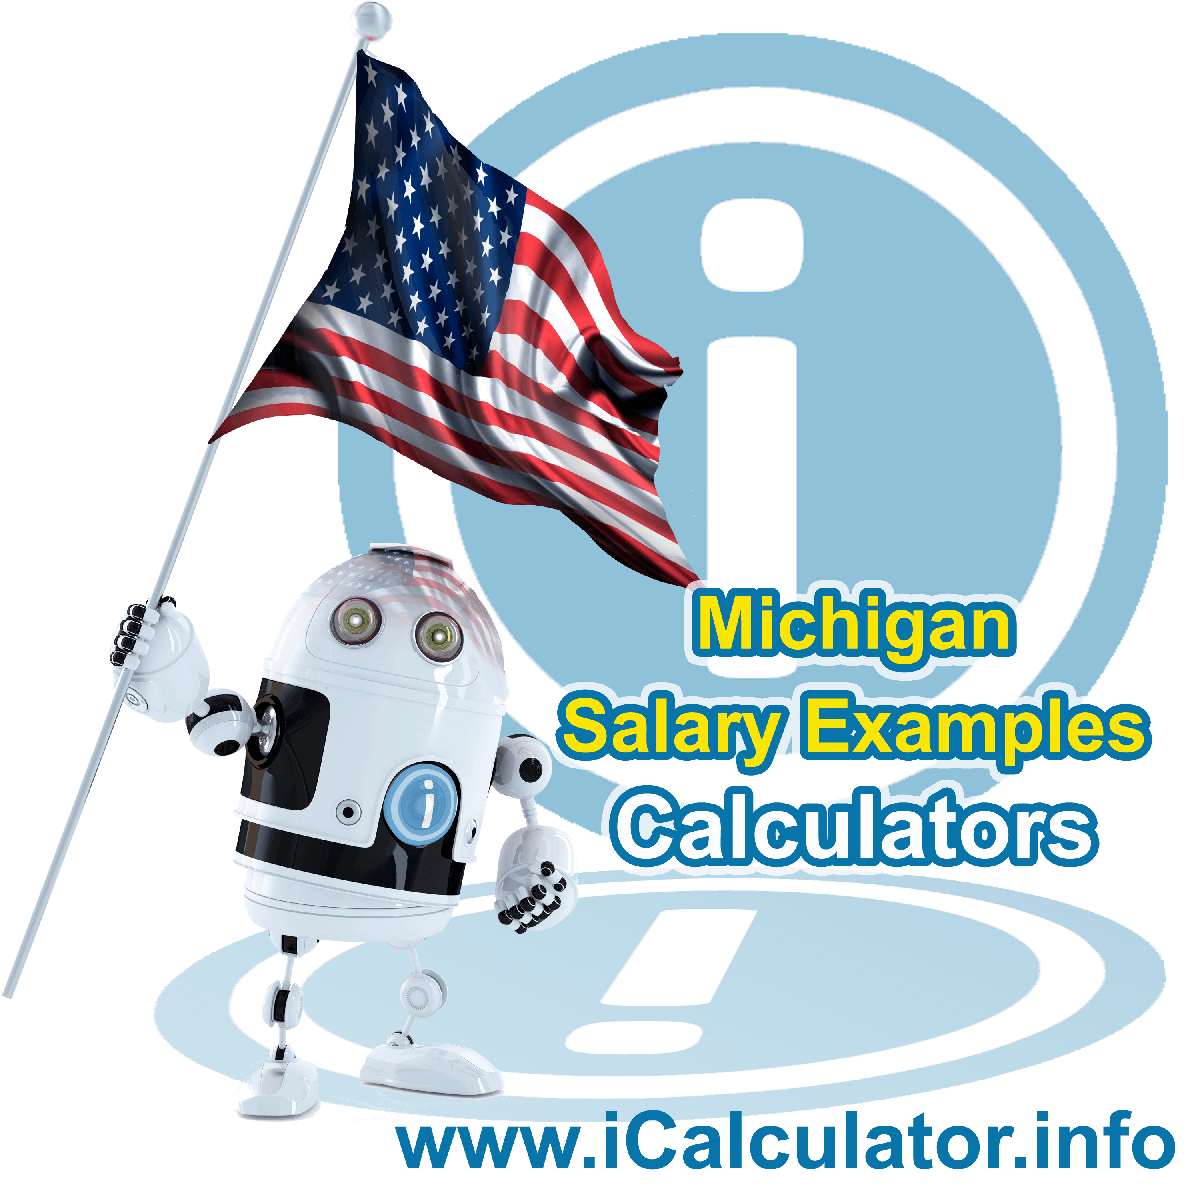 Michigan Salary Example for $120,000.00 in 2020 | iCalculator | $120,000.00 salary example for employee and employer paying Michigan State tincome taxes. Detailed salary after tax calculation including Michigan State Tax, Federal State Tax, Medicare Deductions, Social Security, Capital Gains and other income tax and salary deductions complete with supporting Michigan state tax tables